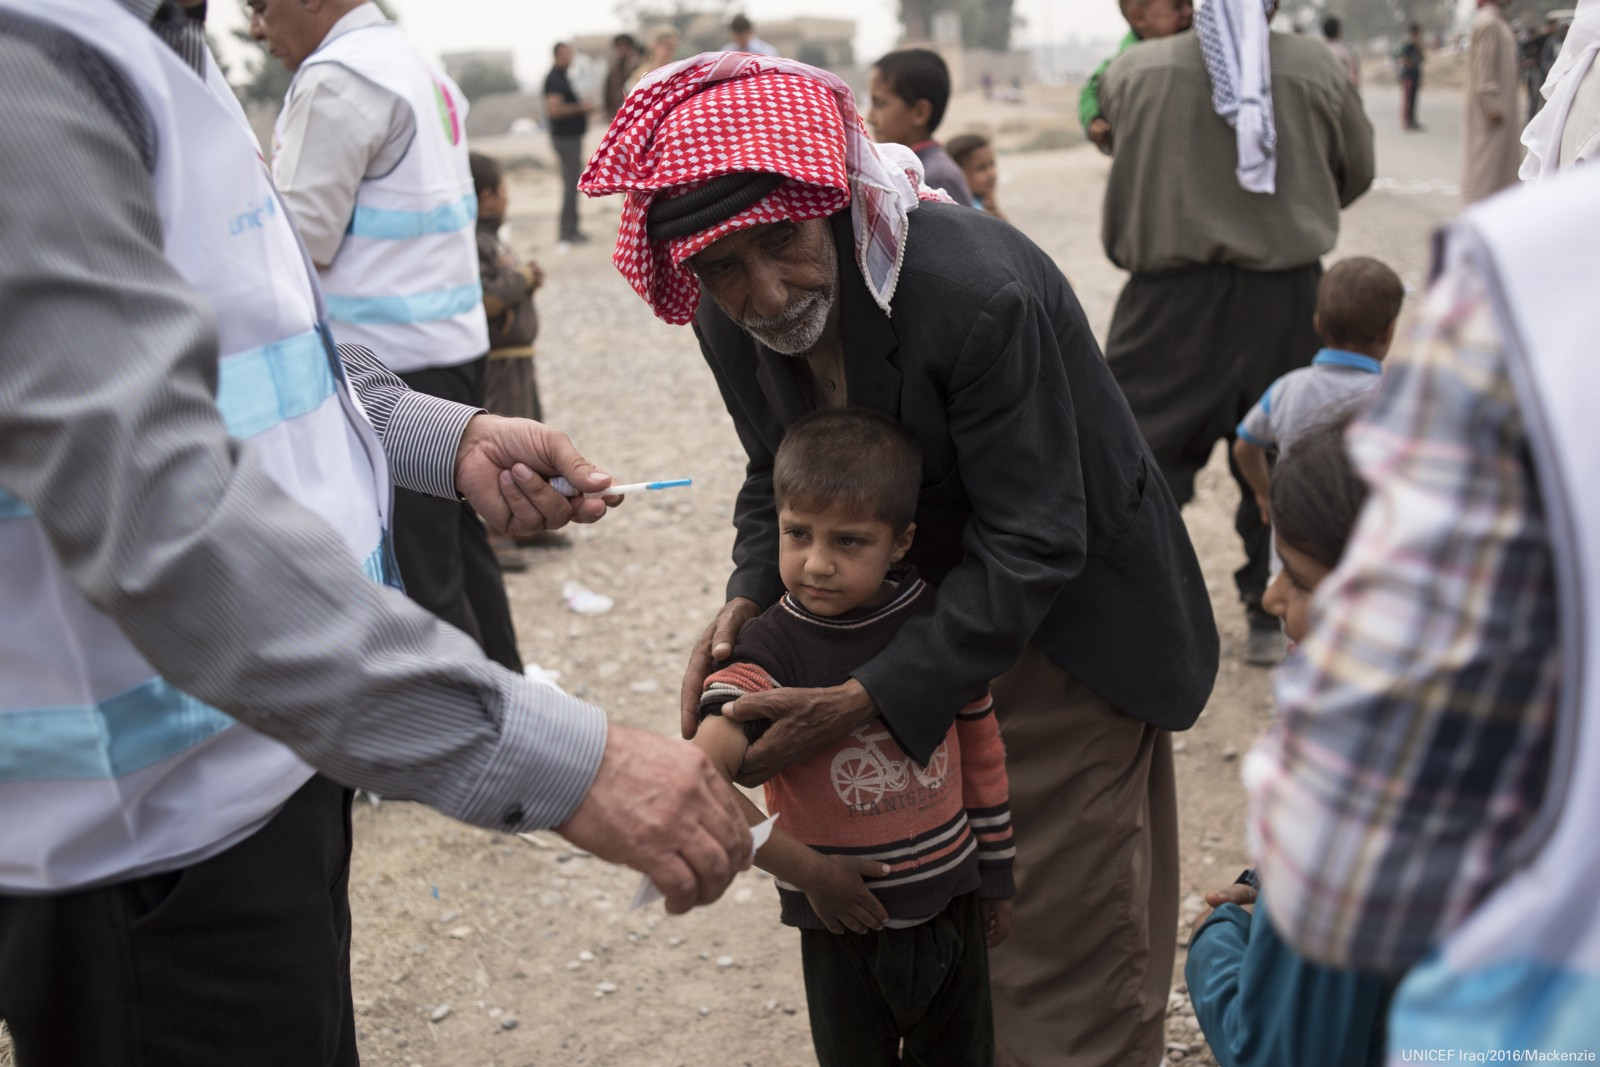 Latest from mosul rolling updates from unicef iraq the federal ministry of health in coordination with the kurdistan region ministry of health and with the support of unicef and the world health organization publicscrutiny Gallery